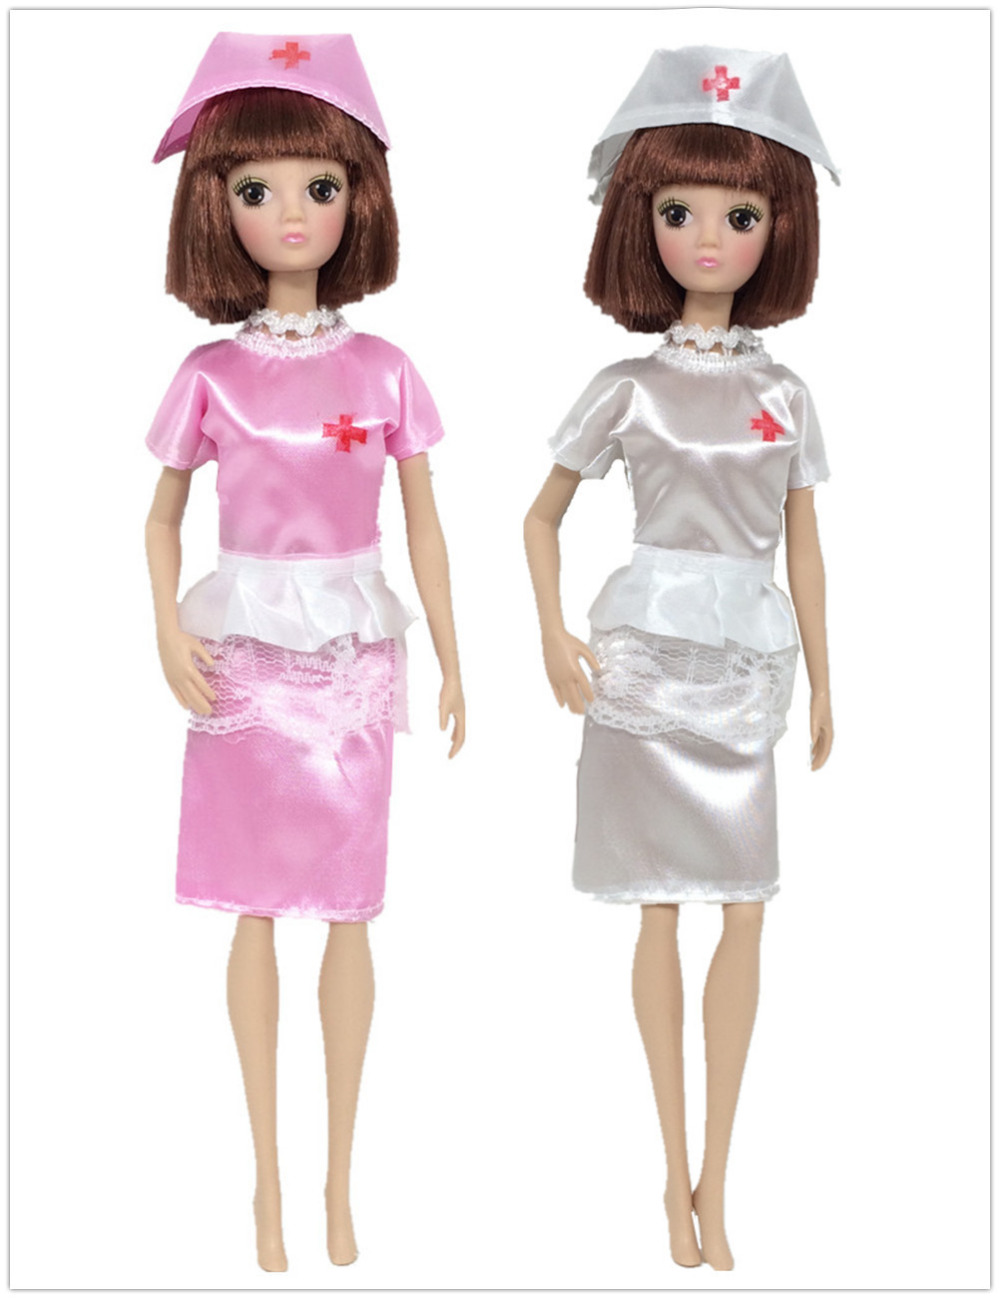 6cc63230a9 NK 2 Set Lot Doll Toys Fashion Clothing Uniform + Hat White Angel Female  Nurse